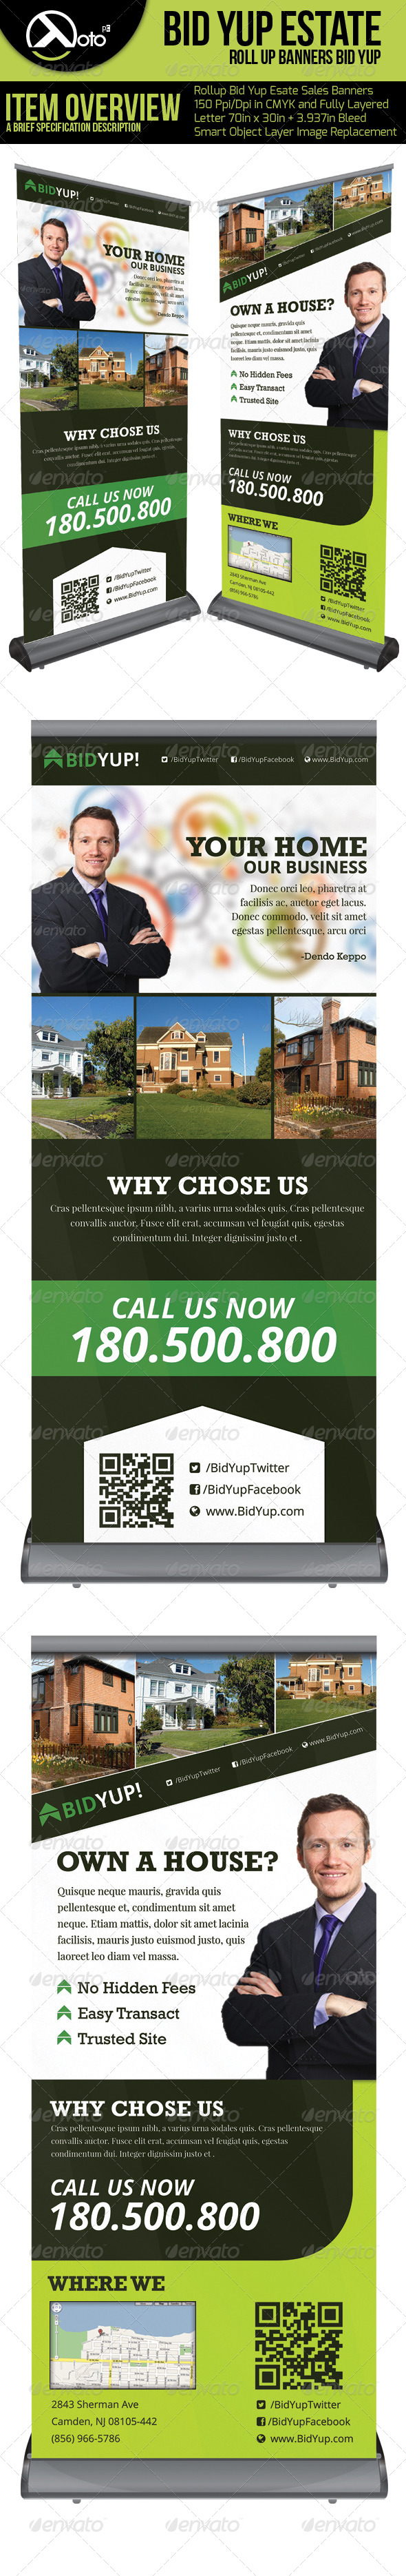 GraphicRiver Bid Yup Estate Sale Roll Up Banners 6383361